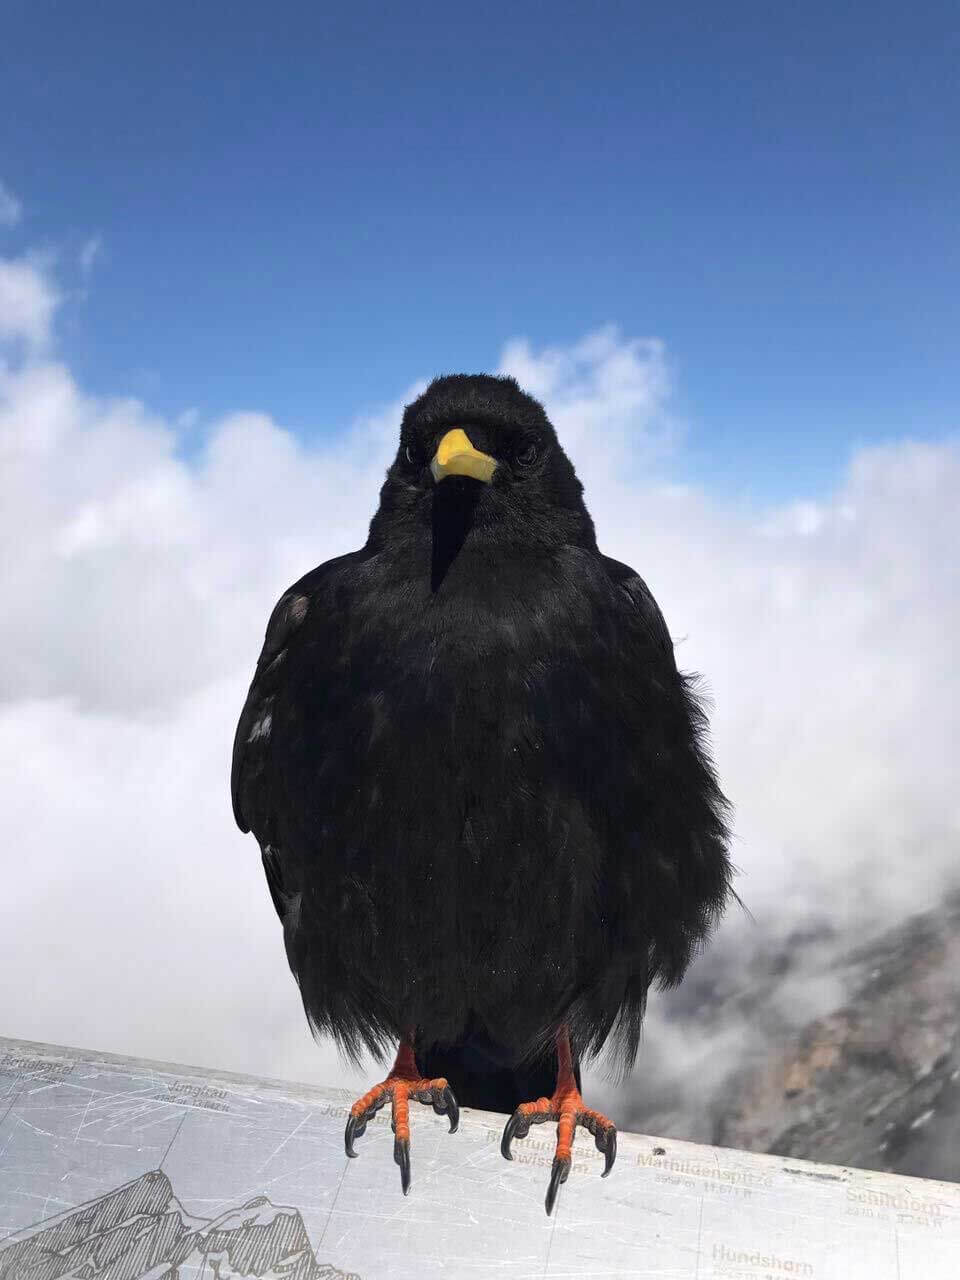 The Crow on Top of the Alps